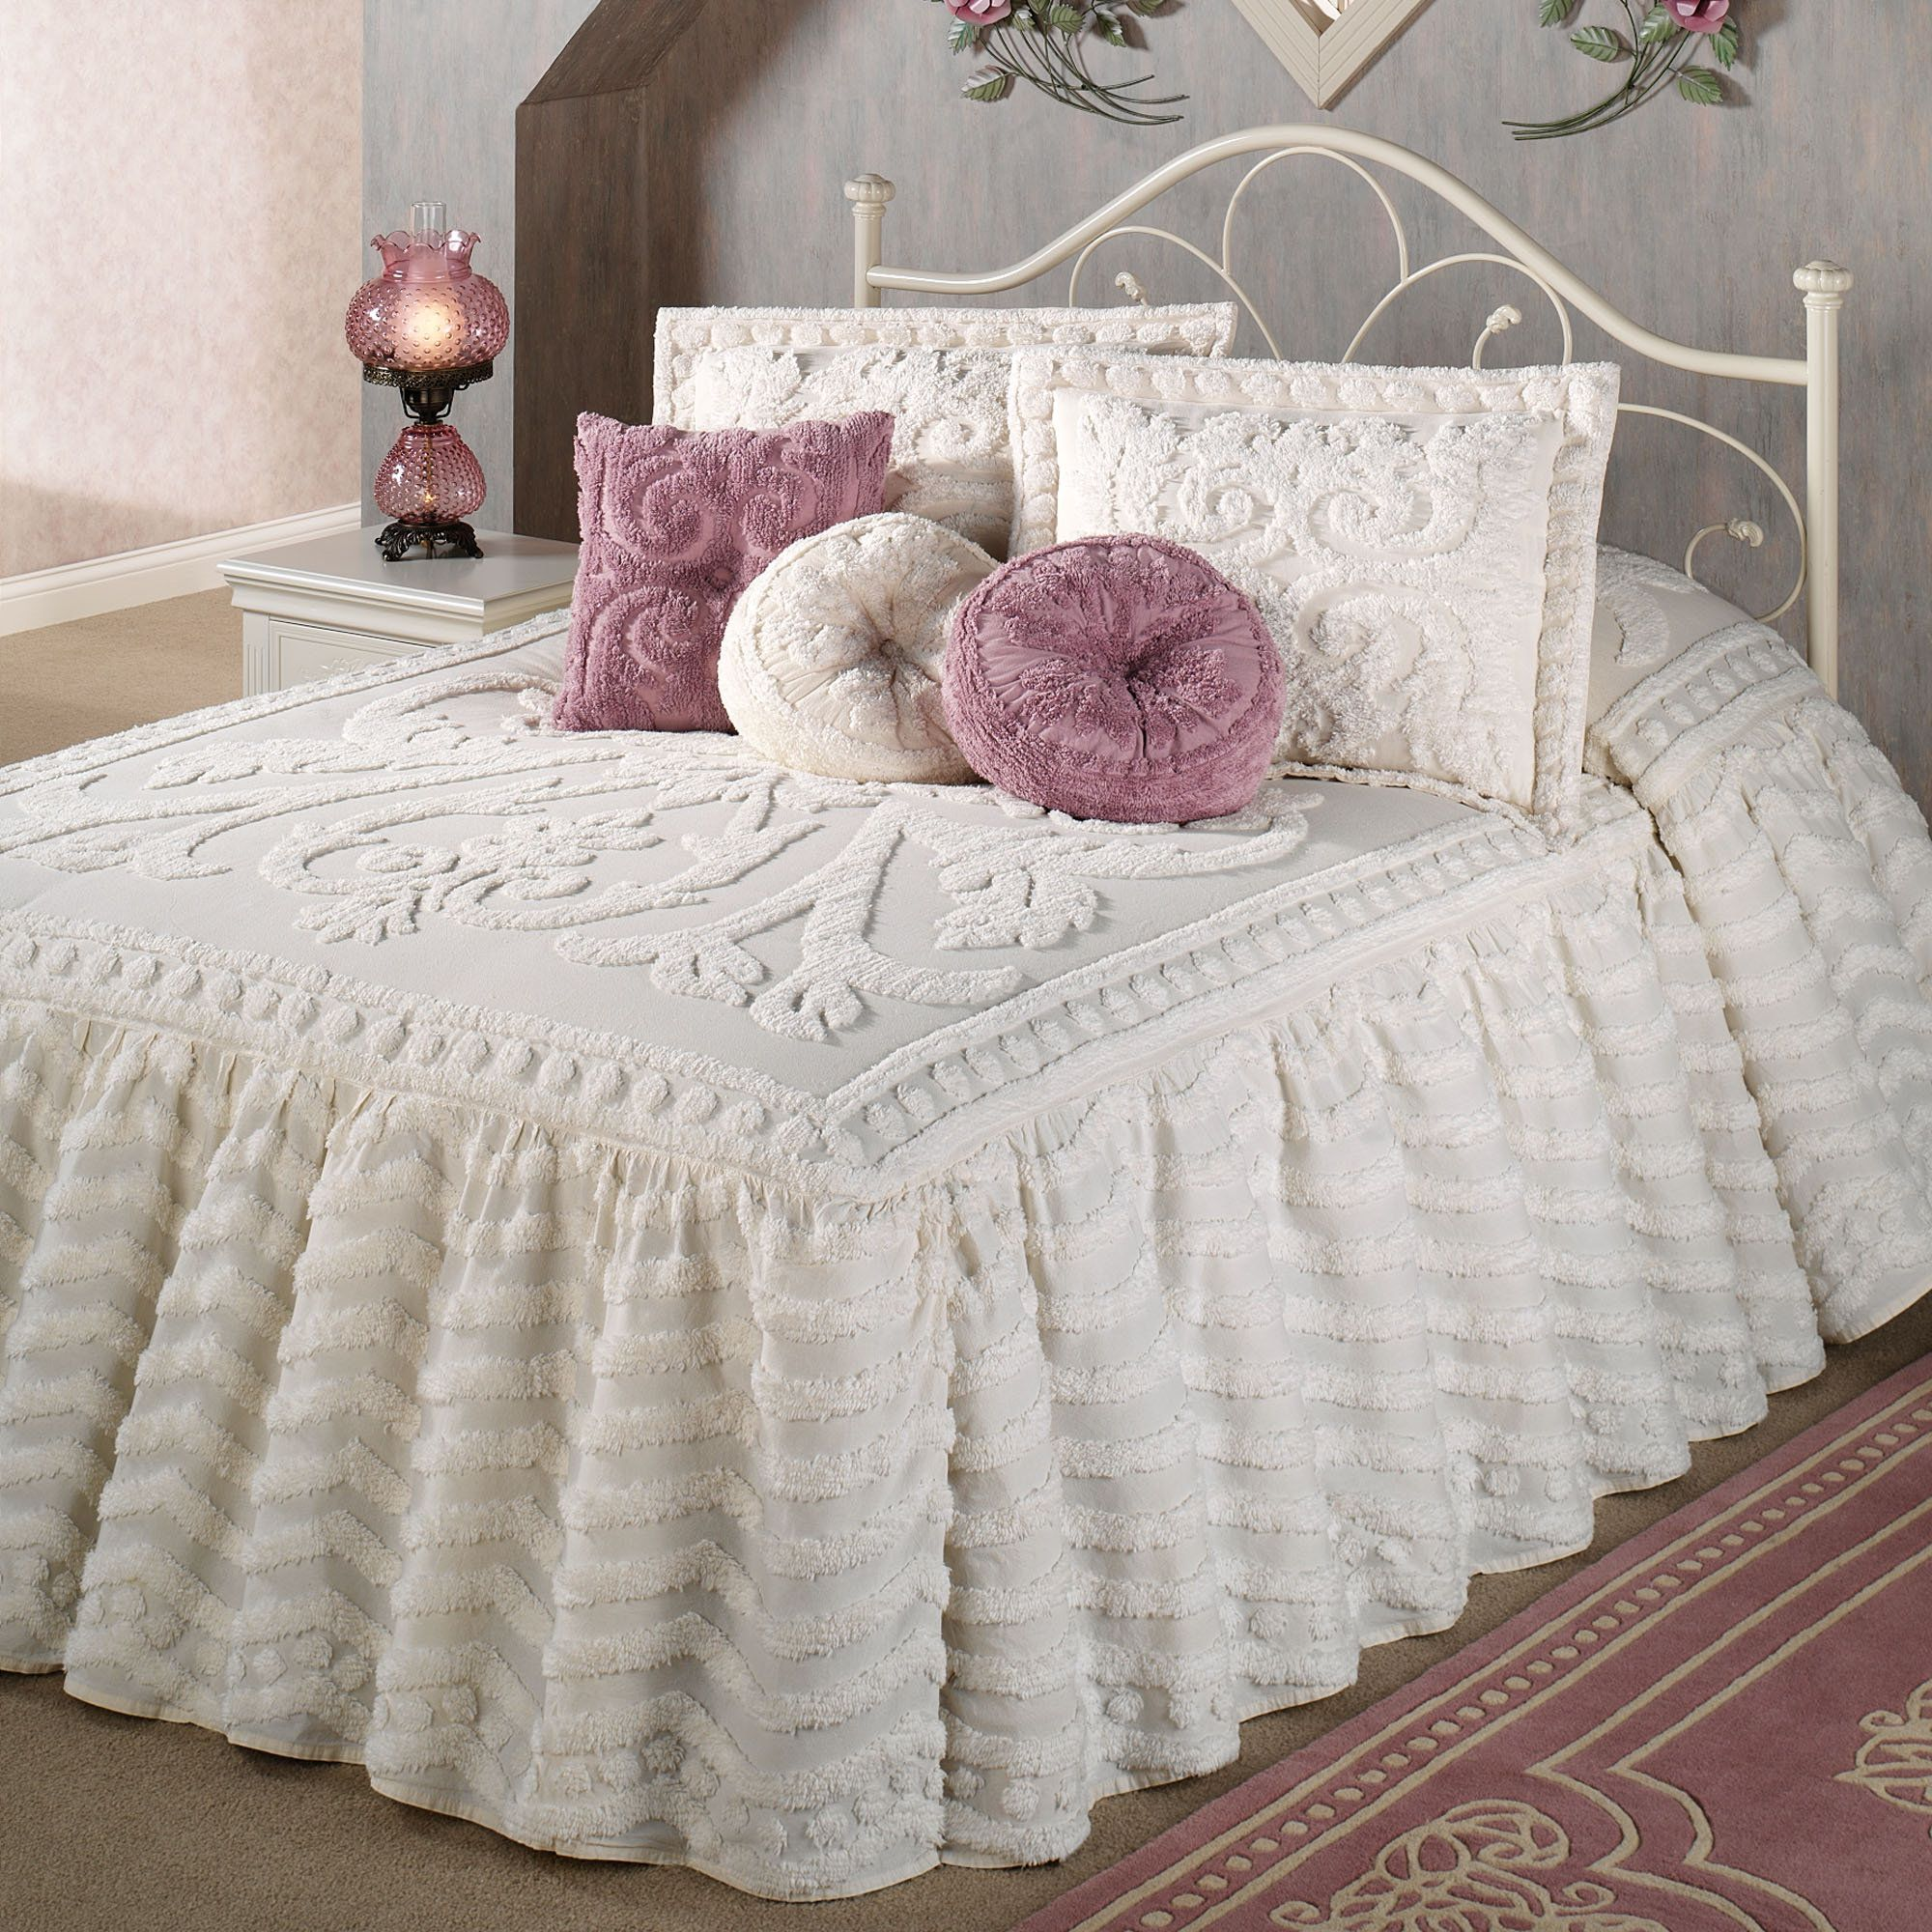 Intrigue Chenille Ruffled Flounce Oversized Bedspread Bedding Beautiful Bedding Vintage Bedspread Bed Spreads Touch of class bedspreads and comforters